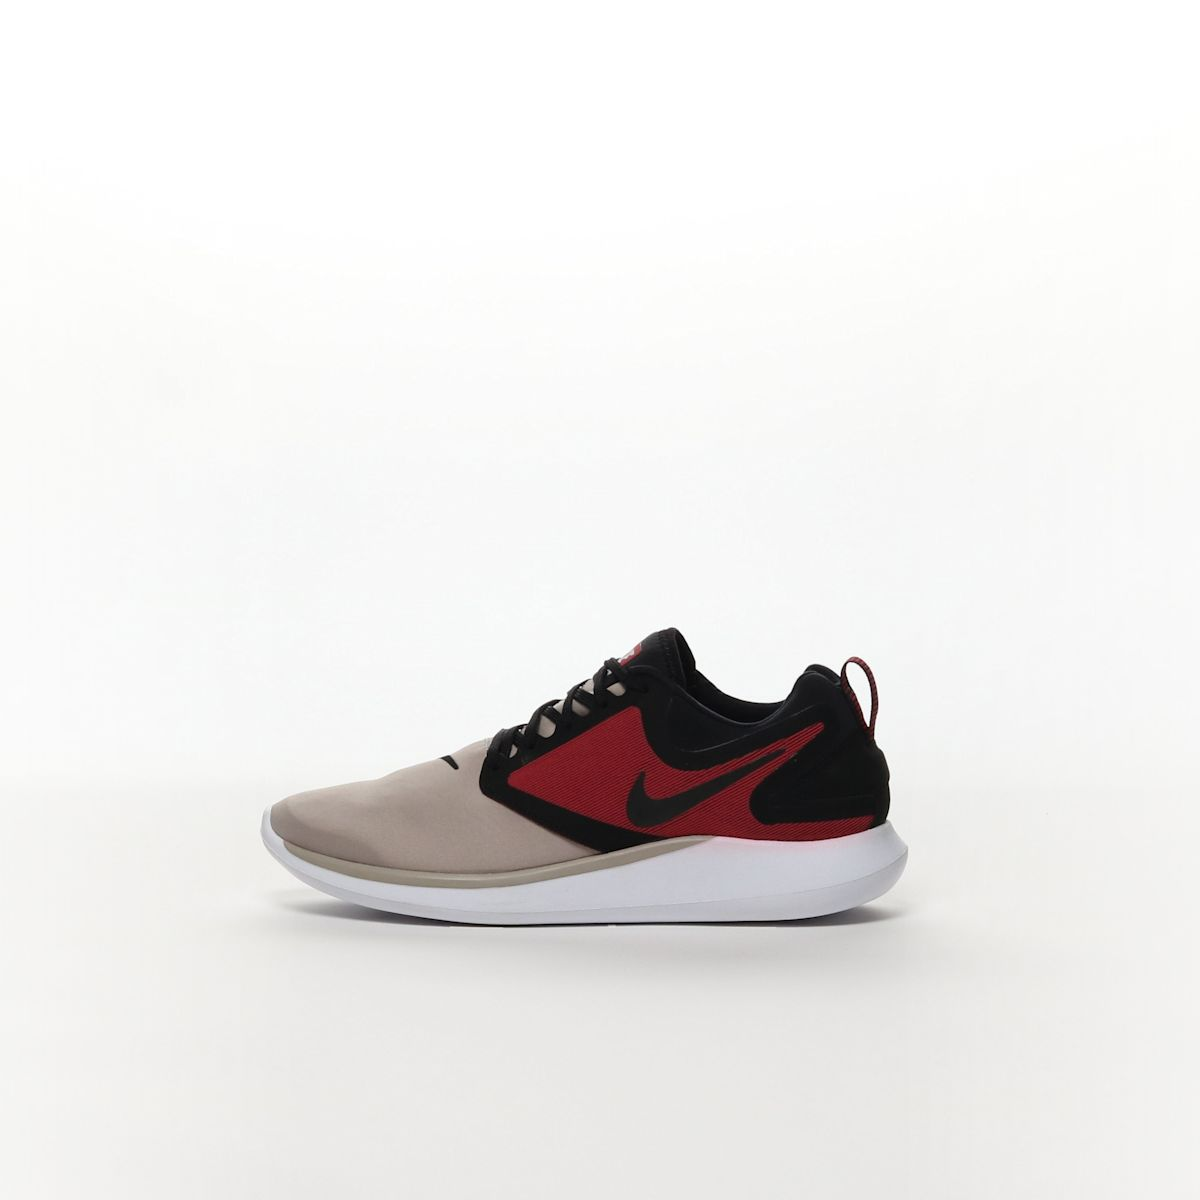 2d4d9f2c0561 Men s Nike LunarSolo Running Shoe - COBBLESTONE WHITE-TOUGH RED-BLACK –  Resku